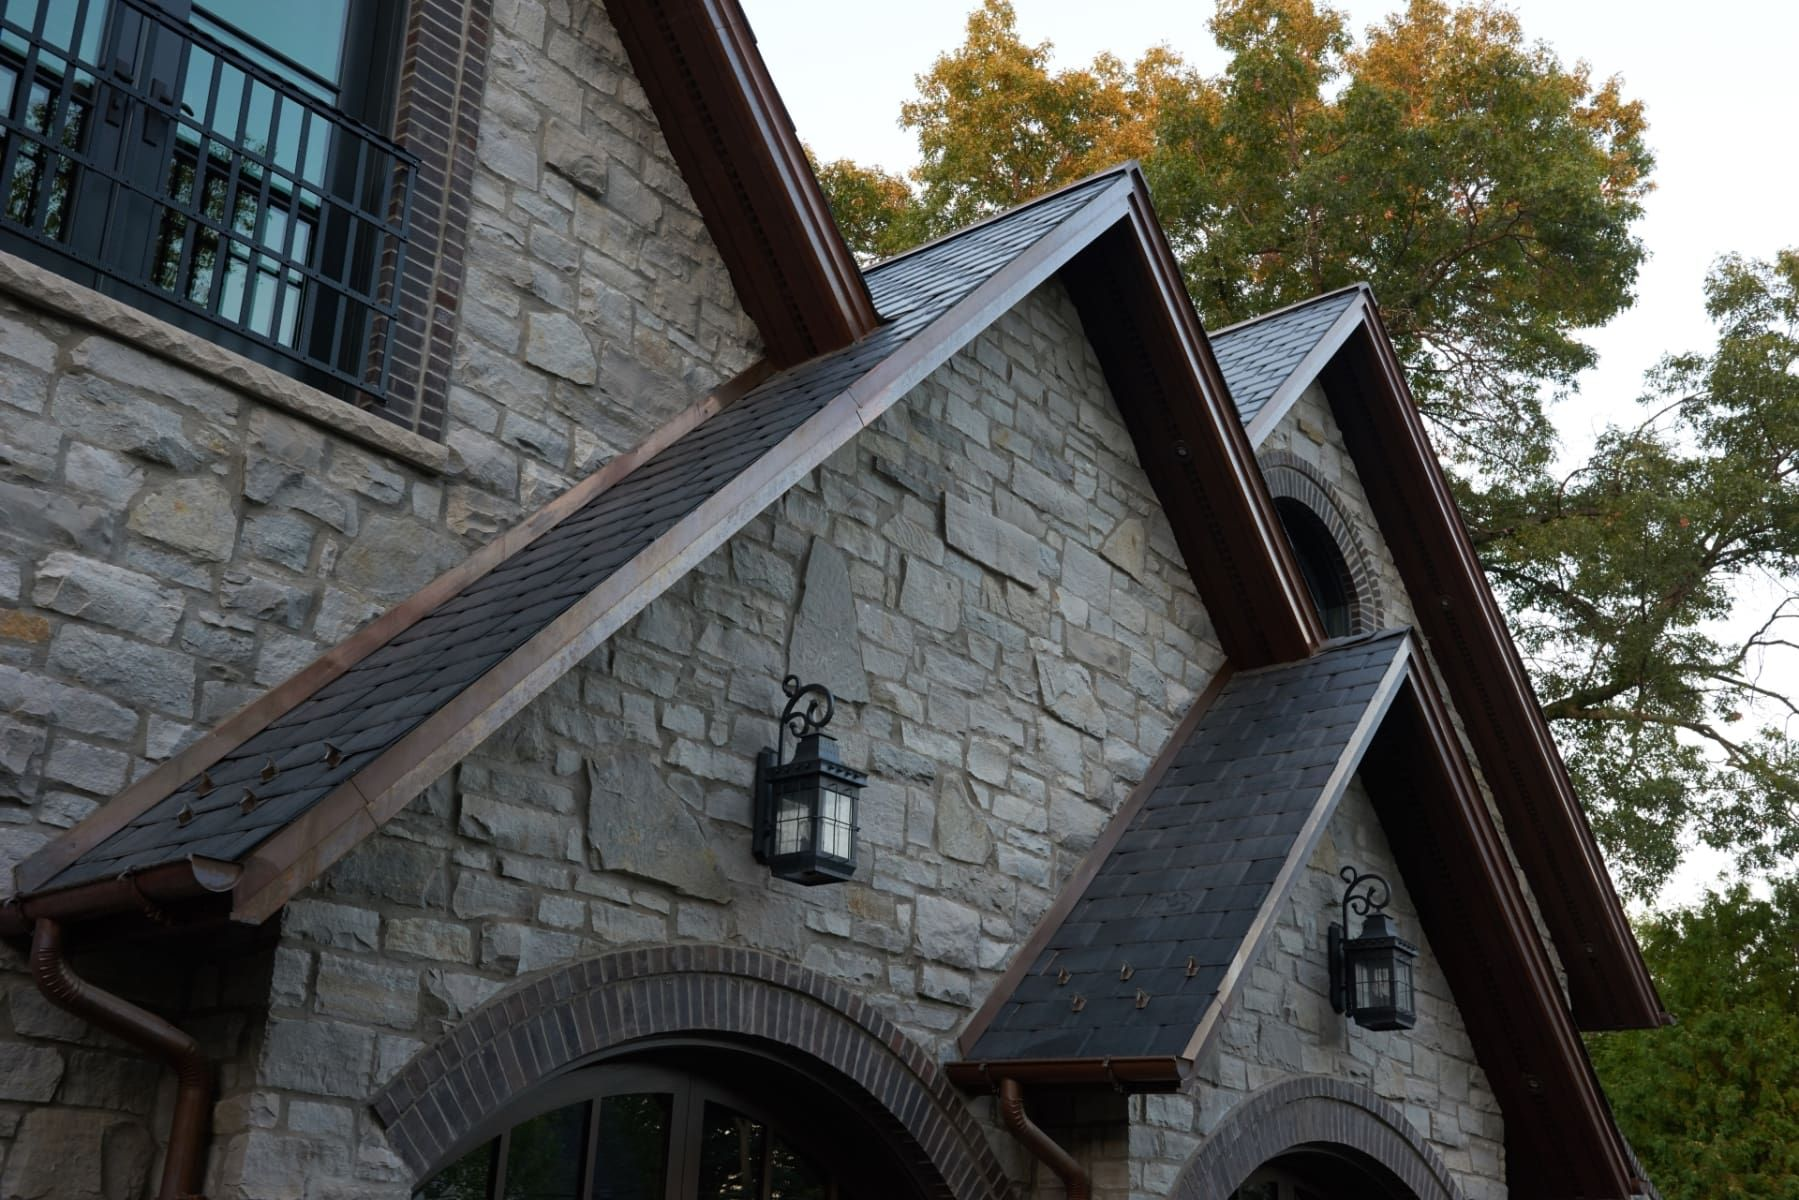 Synthetic Slate Roofing Shingles By Modern Slate House Ideas House Exterior Dream House House Design Hou Synthetic Slate Roofing House Exterior Roofing